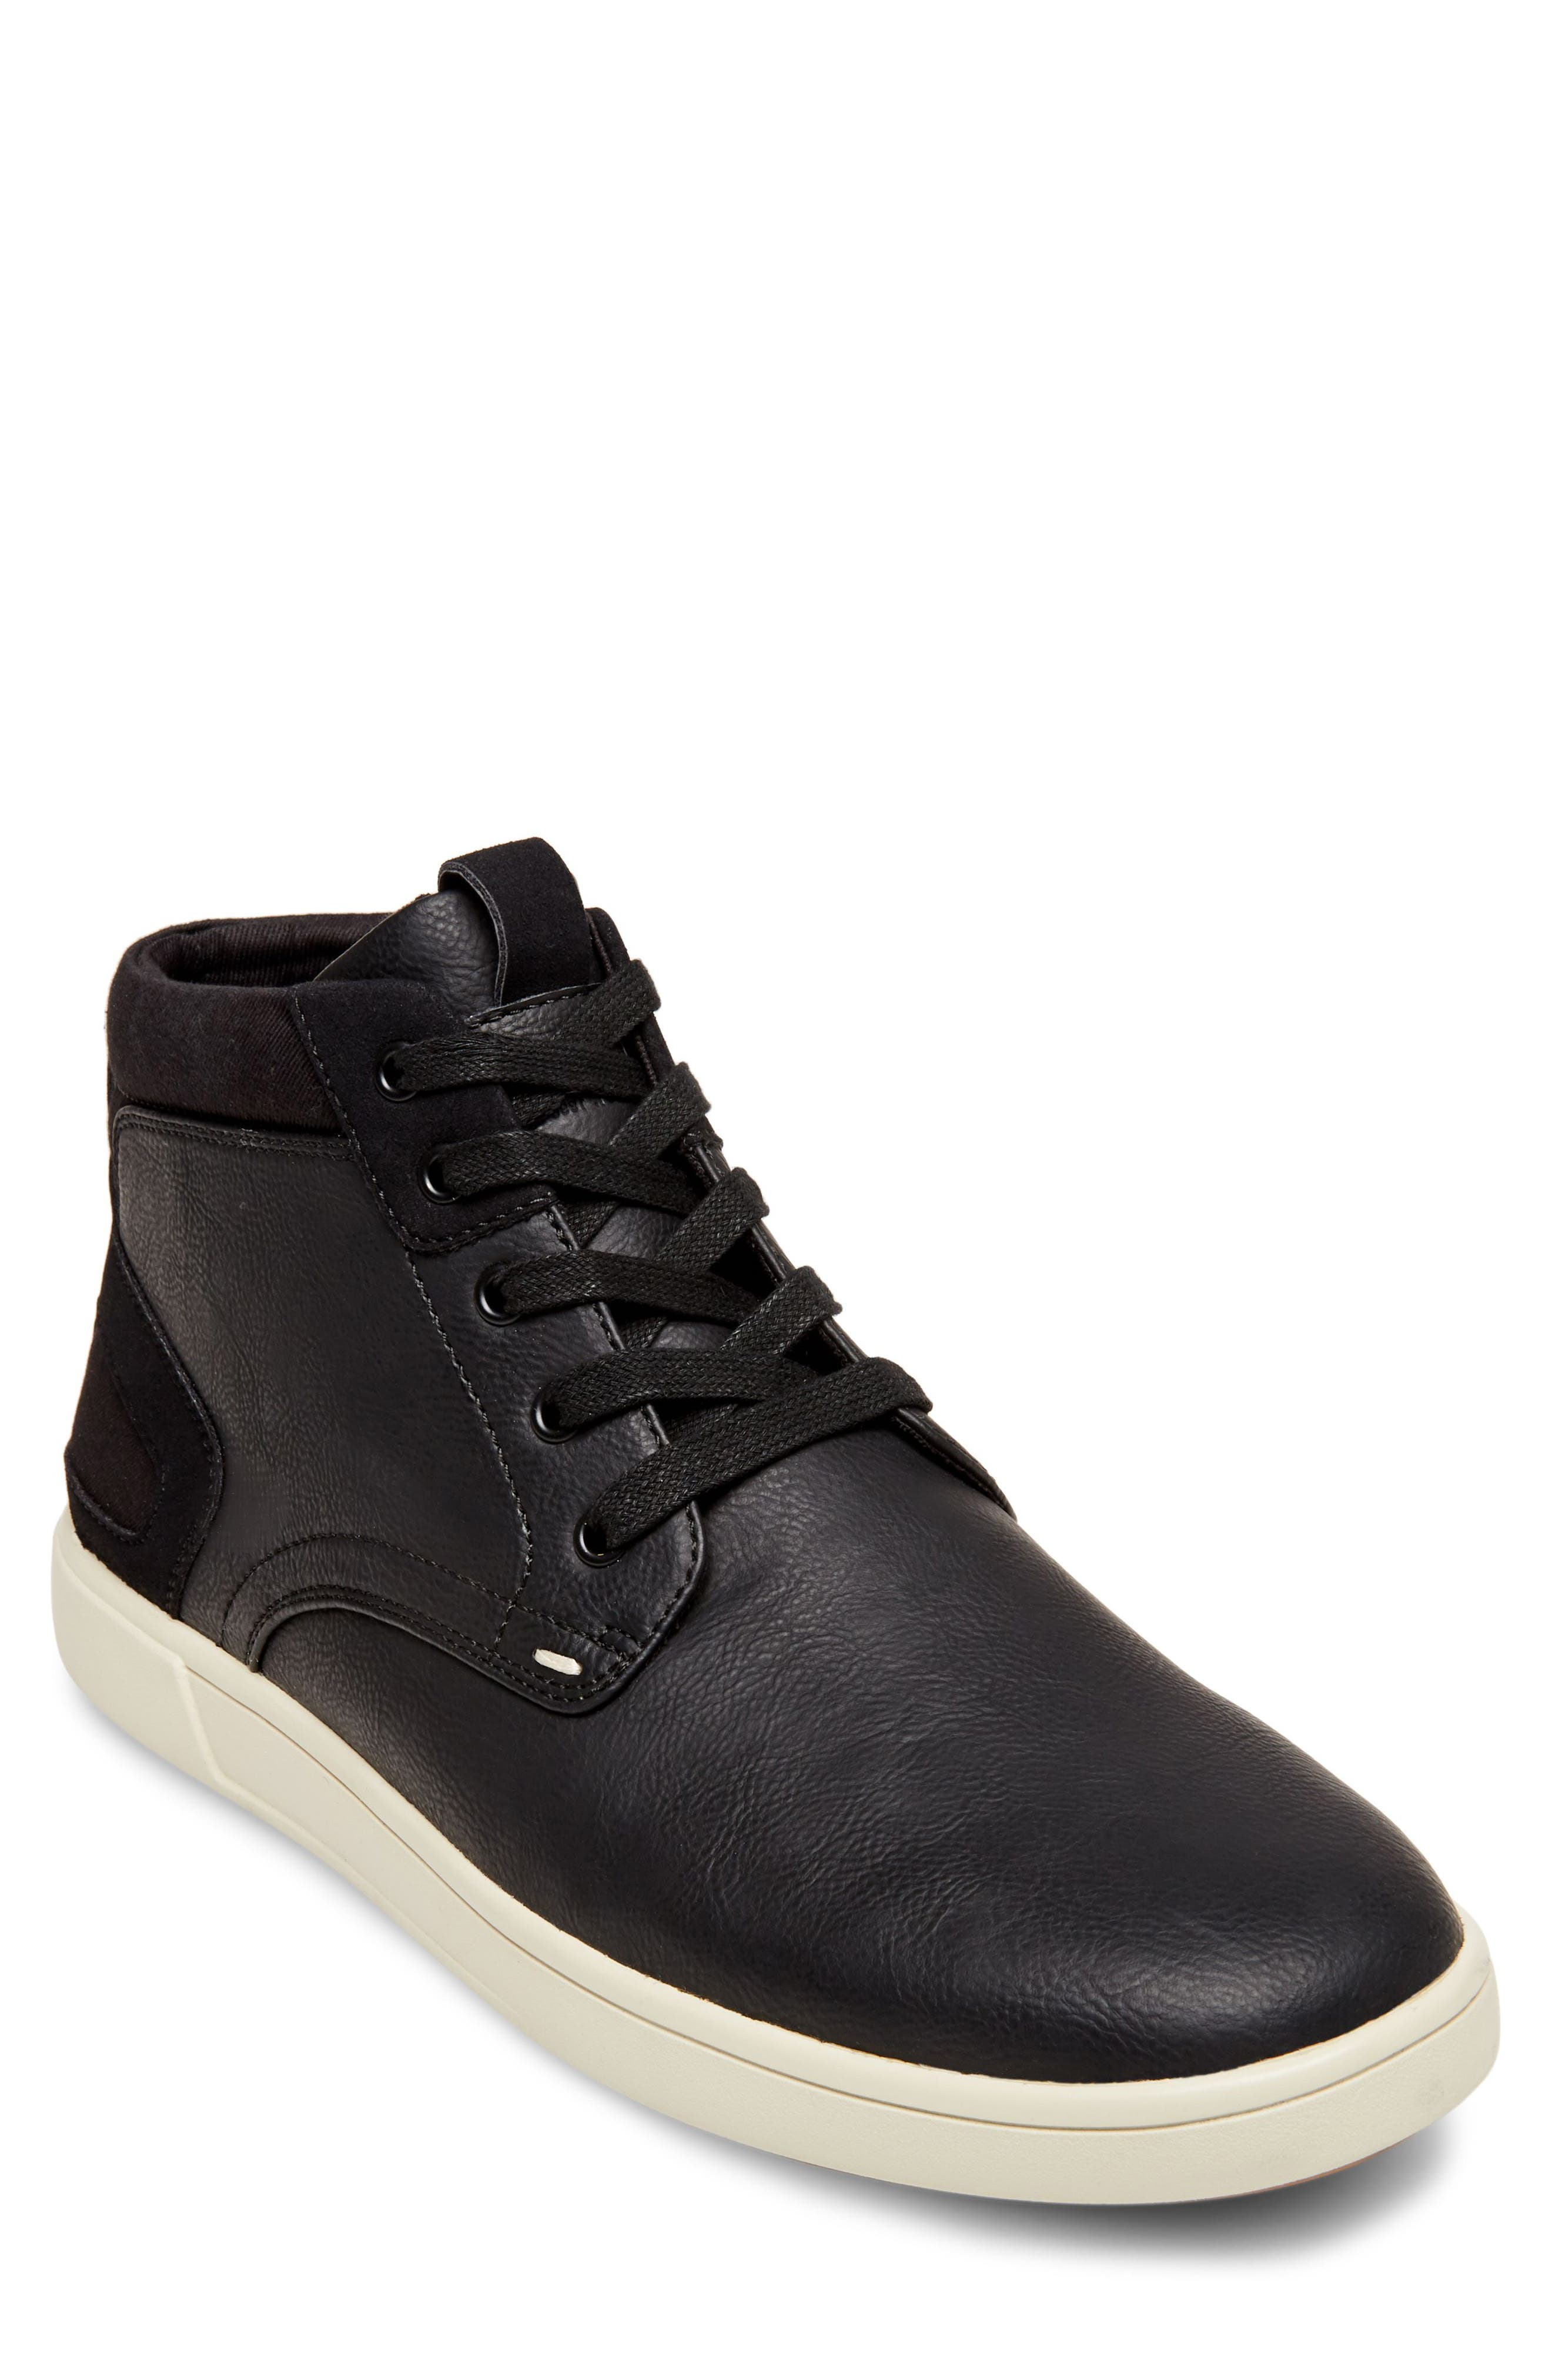 Forsyth High Top Sneaker,                         Main,                         color, Black Leather